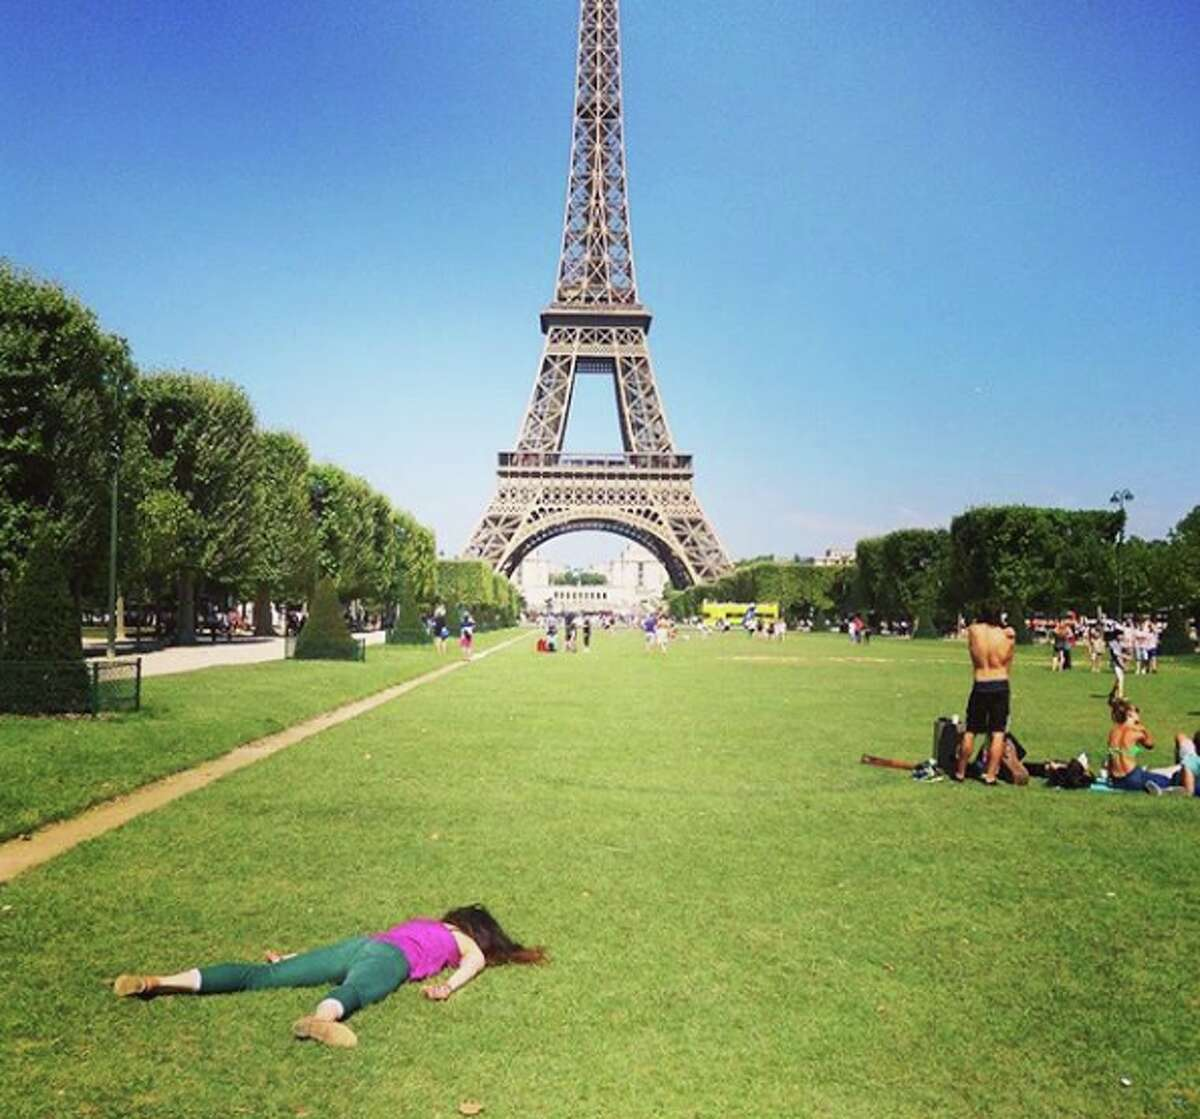 Stephanie Leigh visits the Eiffel Tower in Paris in her own macabre way. The artist's